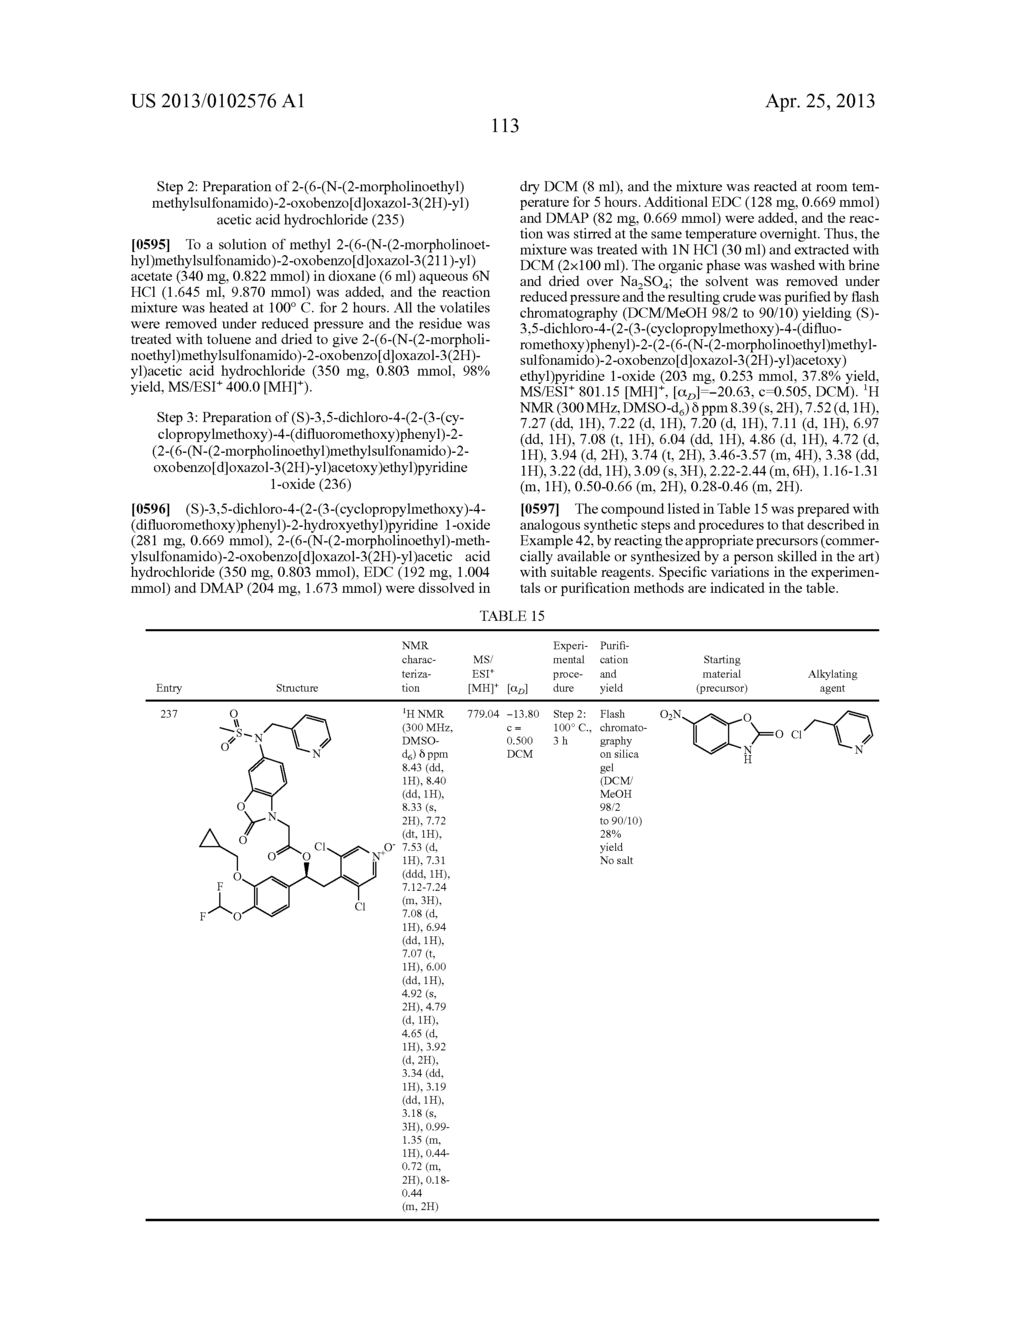 DERIVATIVES OF 1-PHENYL-2-PYRIDINYL ALKYL ALCOHOLS AS PHOSPHODIESTERASE     INHIBITORS - diagram, schematic, and image 113